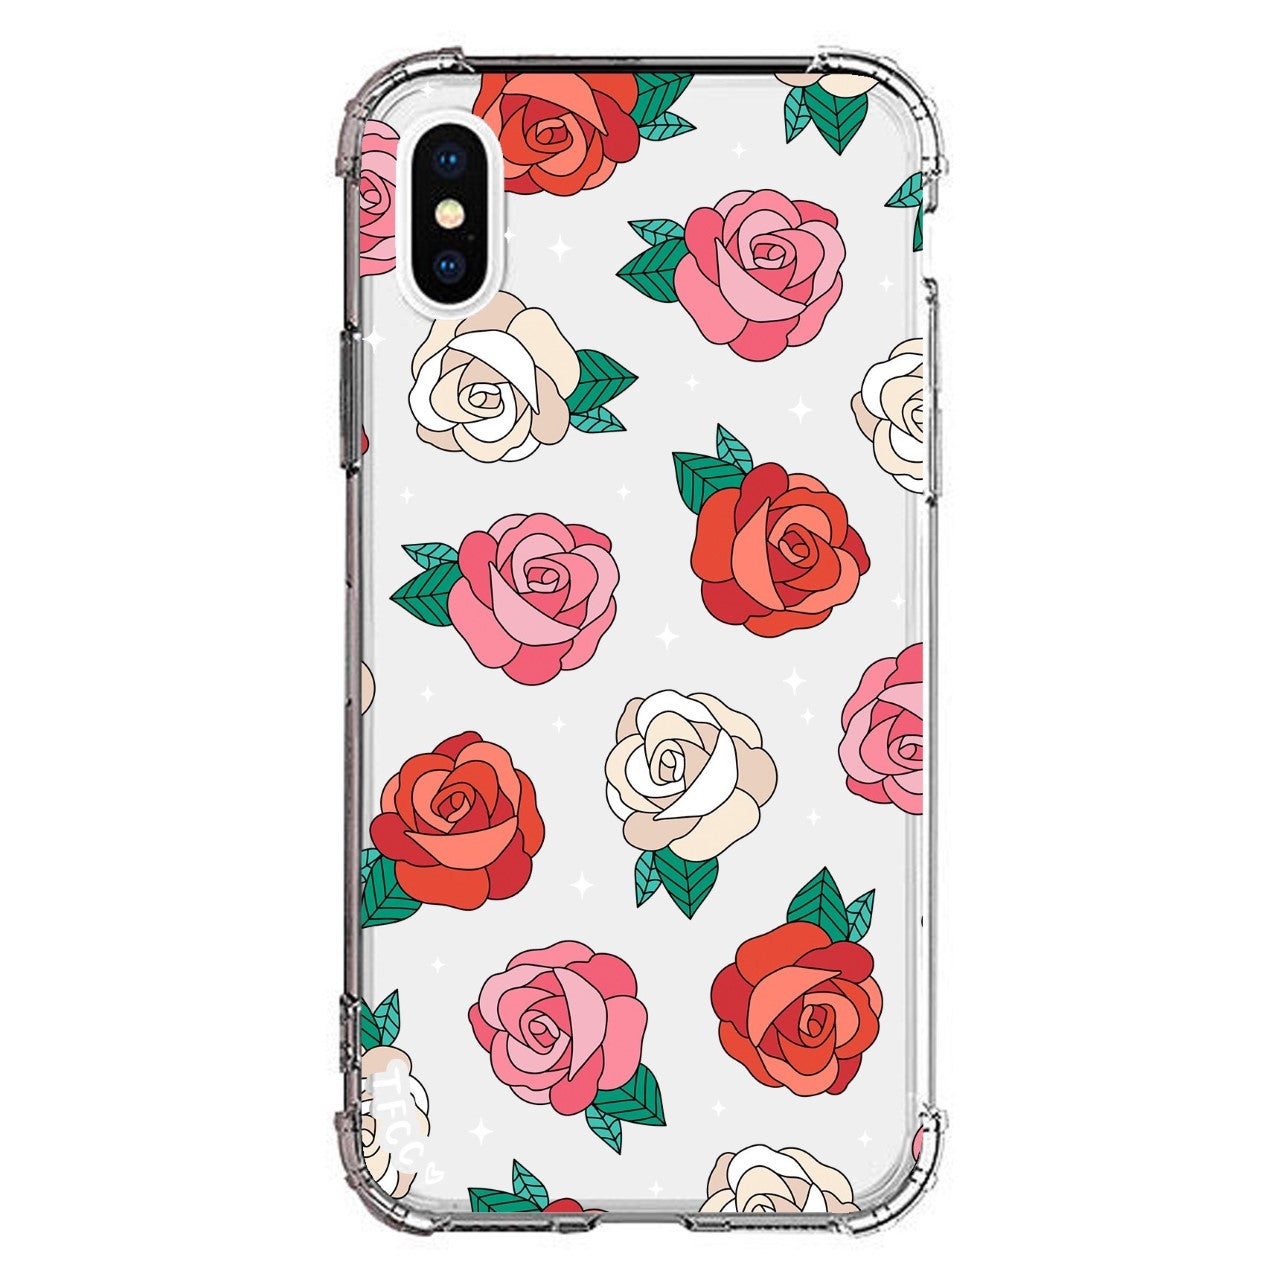 ROSES CLEAR CASE - thefonecasecompany